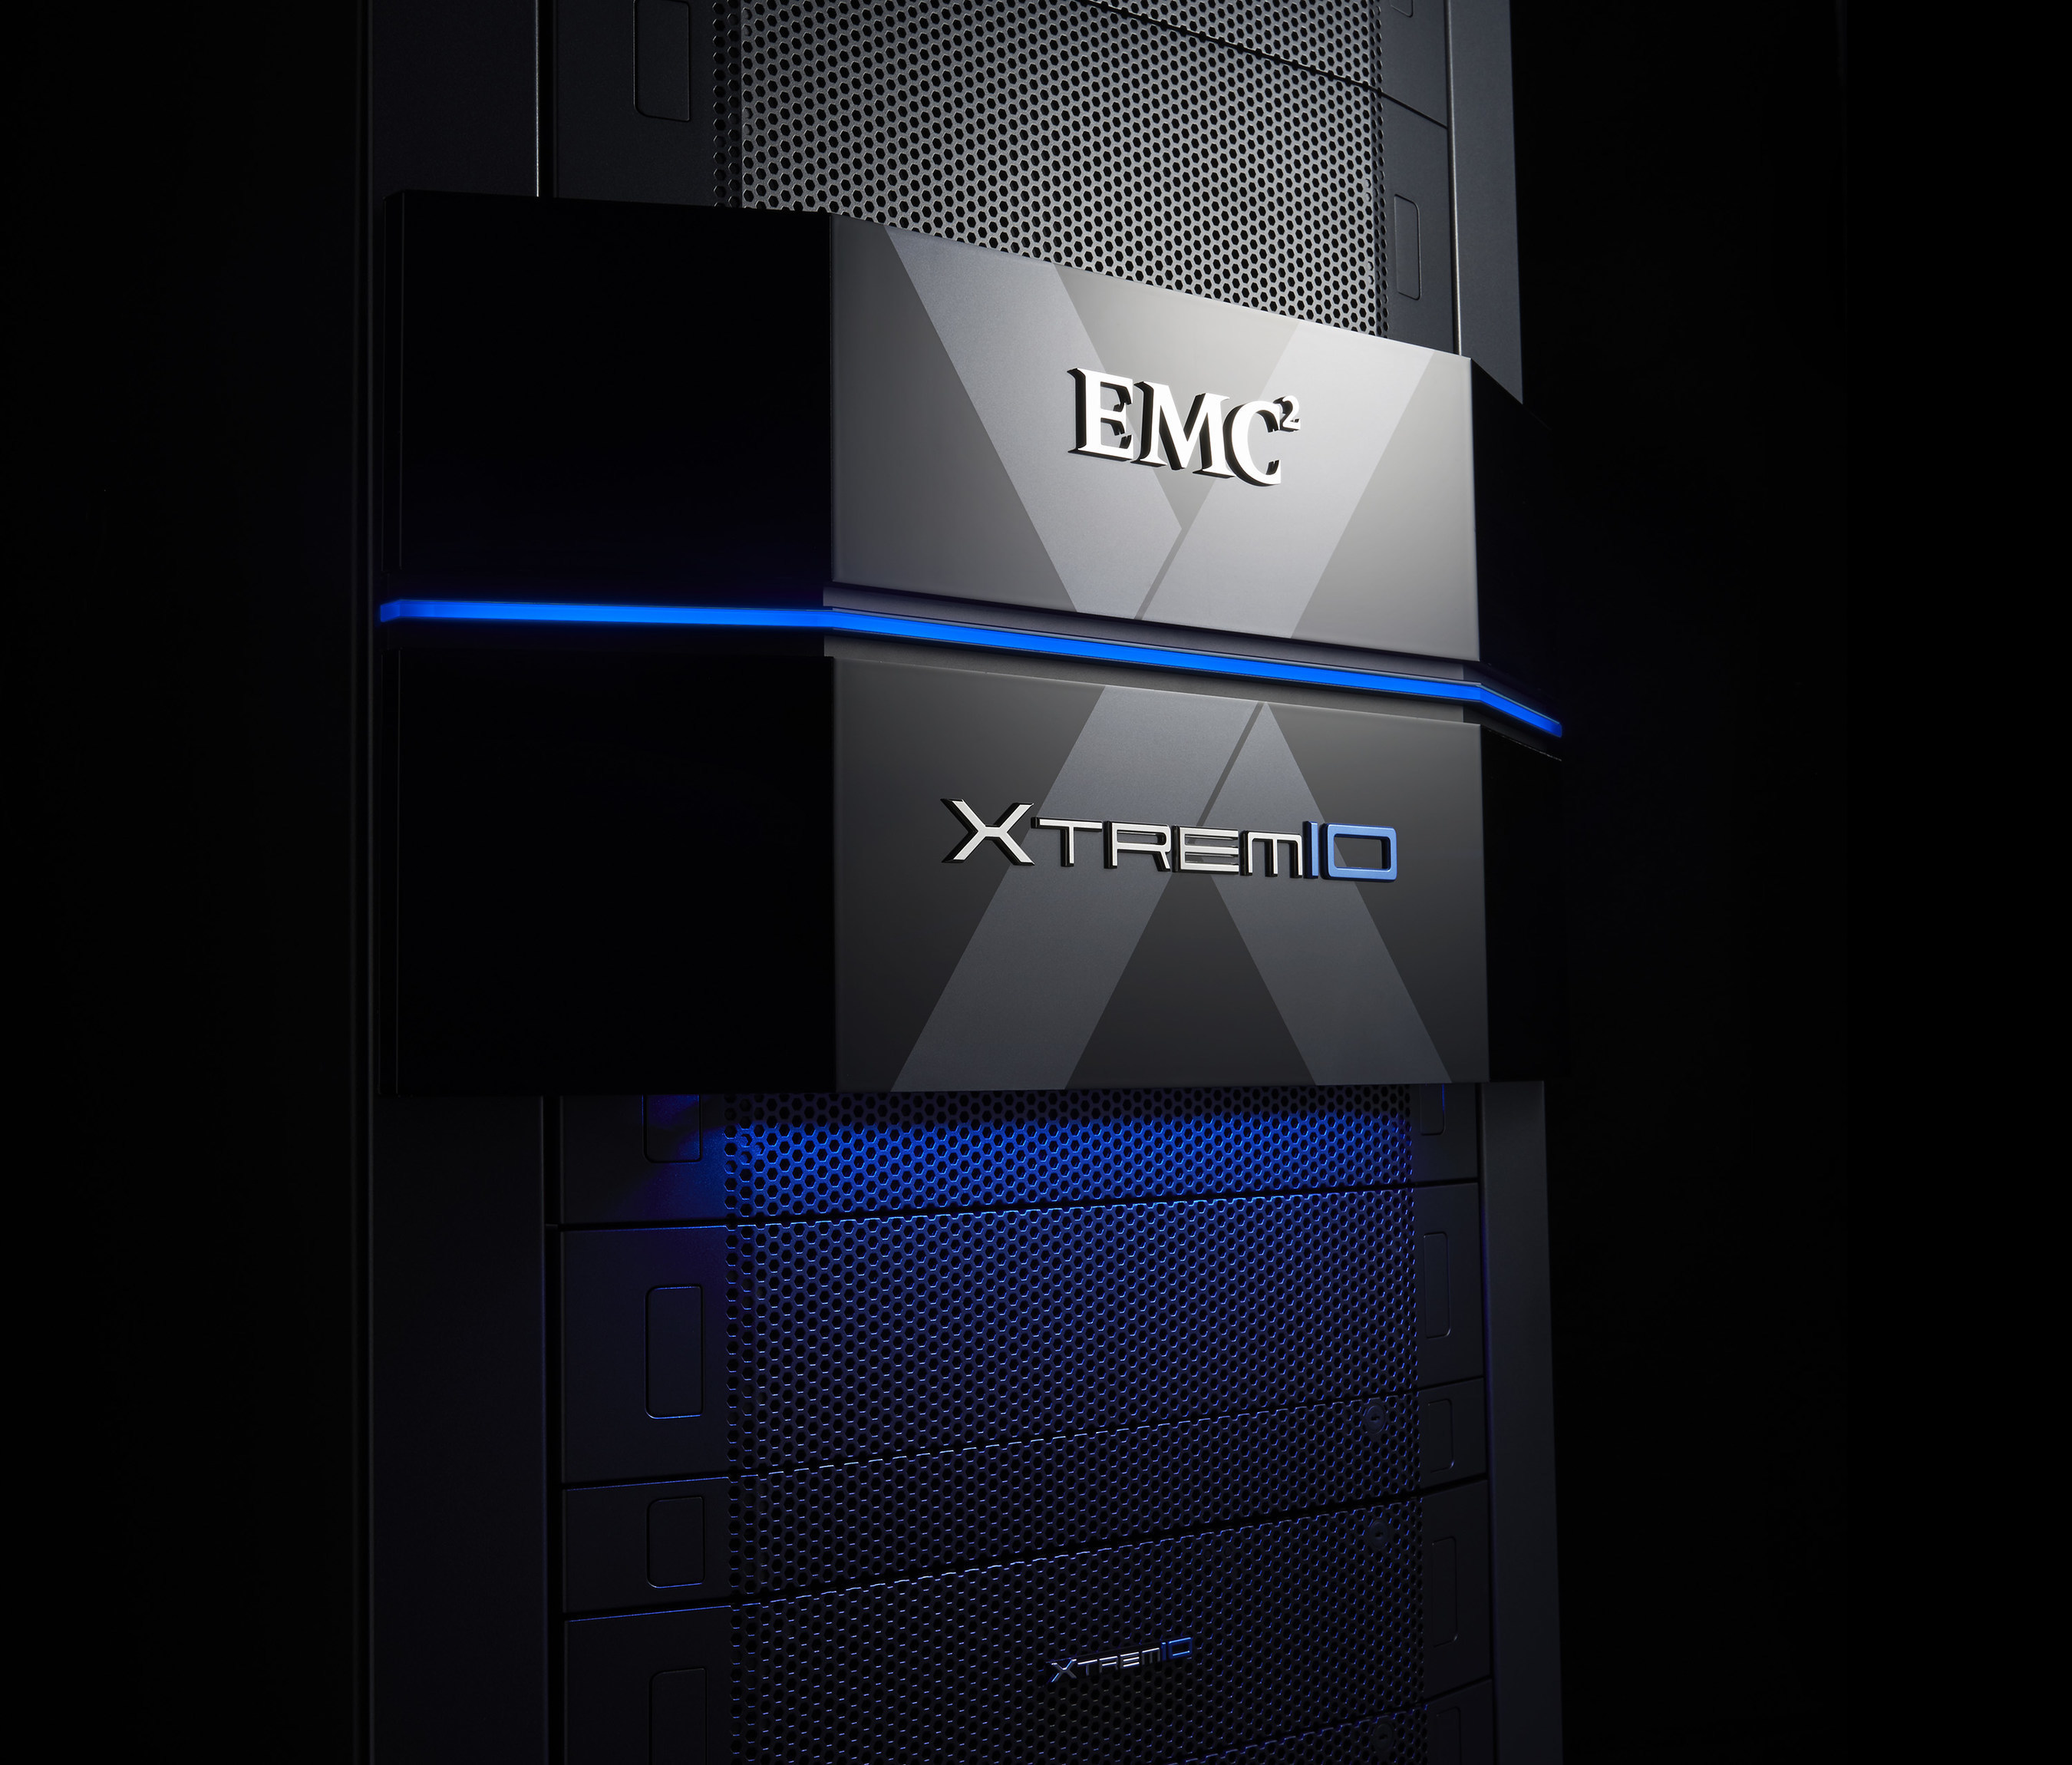 EMC Extends Leadership in the All-Flash Array Market with XtremIO 4.0 (a.k.a. 'The Beast')